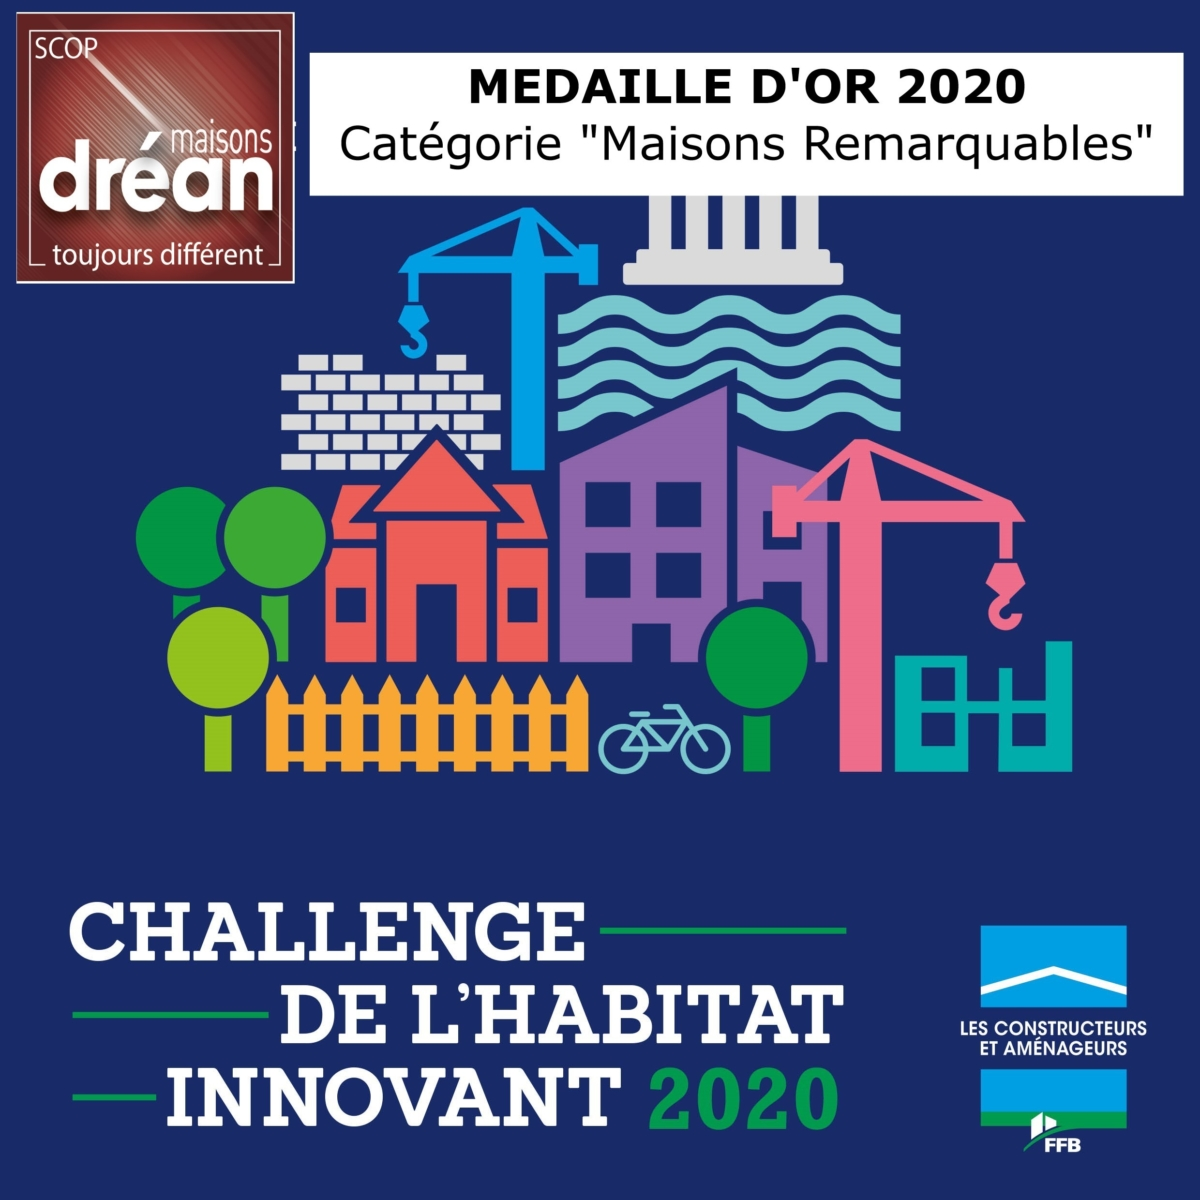 , Challenge national 2020 de la Fédération Nationale du Batiment